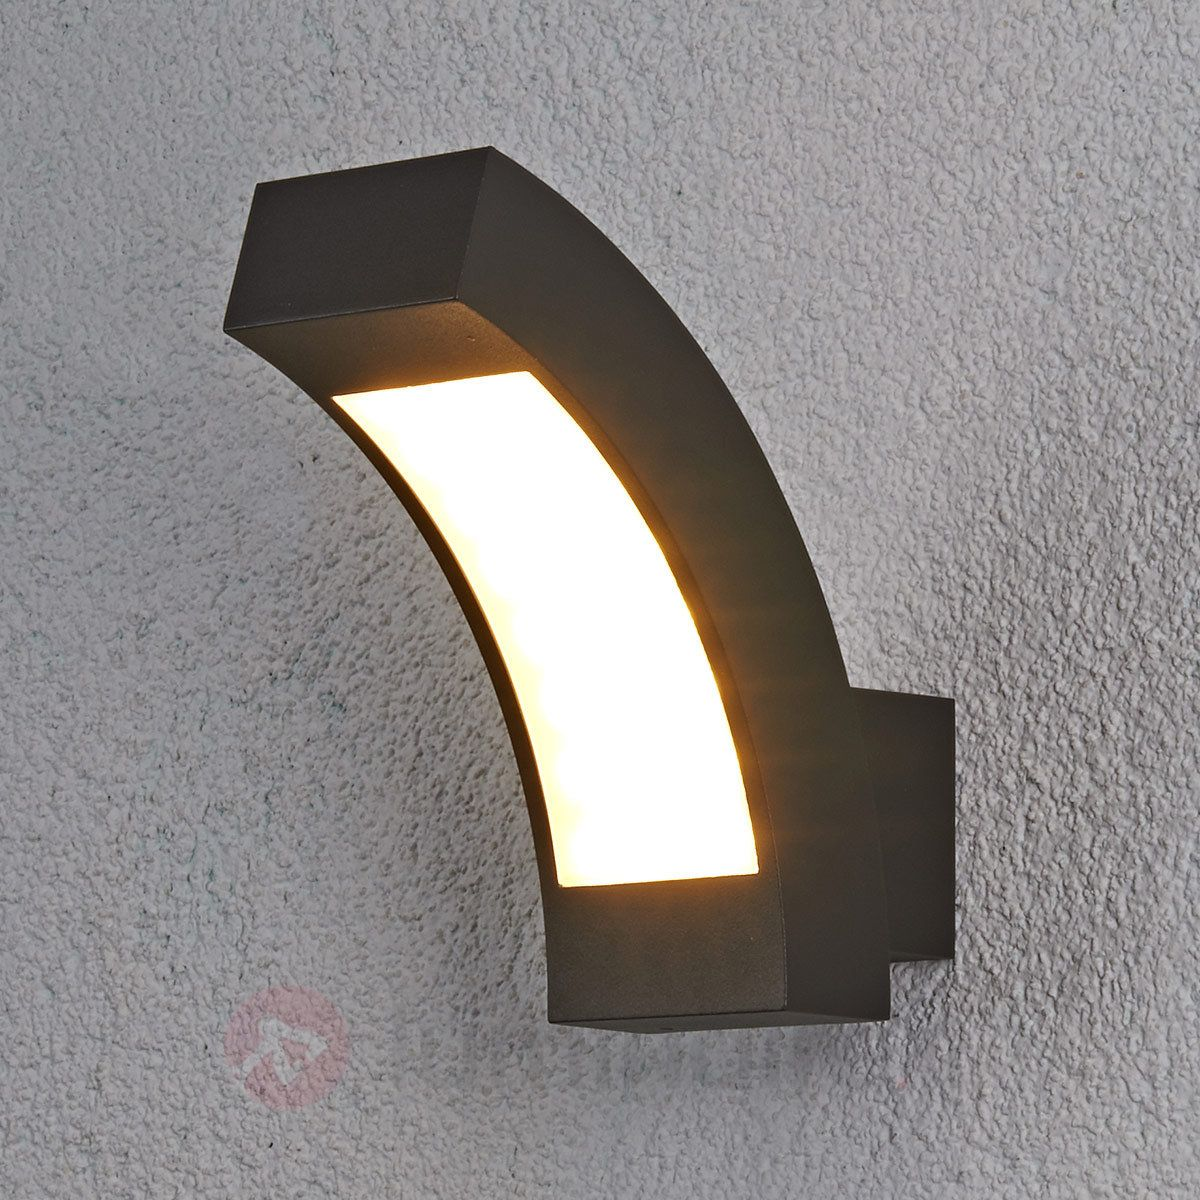 Applique d 39 ext rieur led lennik ip54 for Applique exterieur